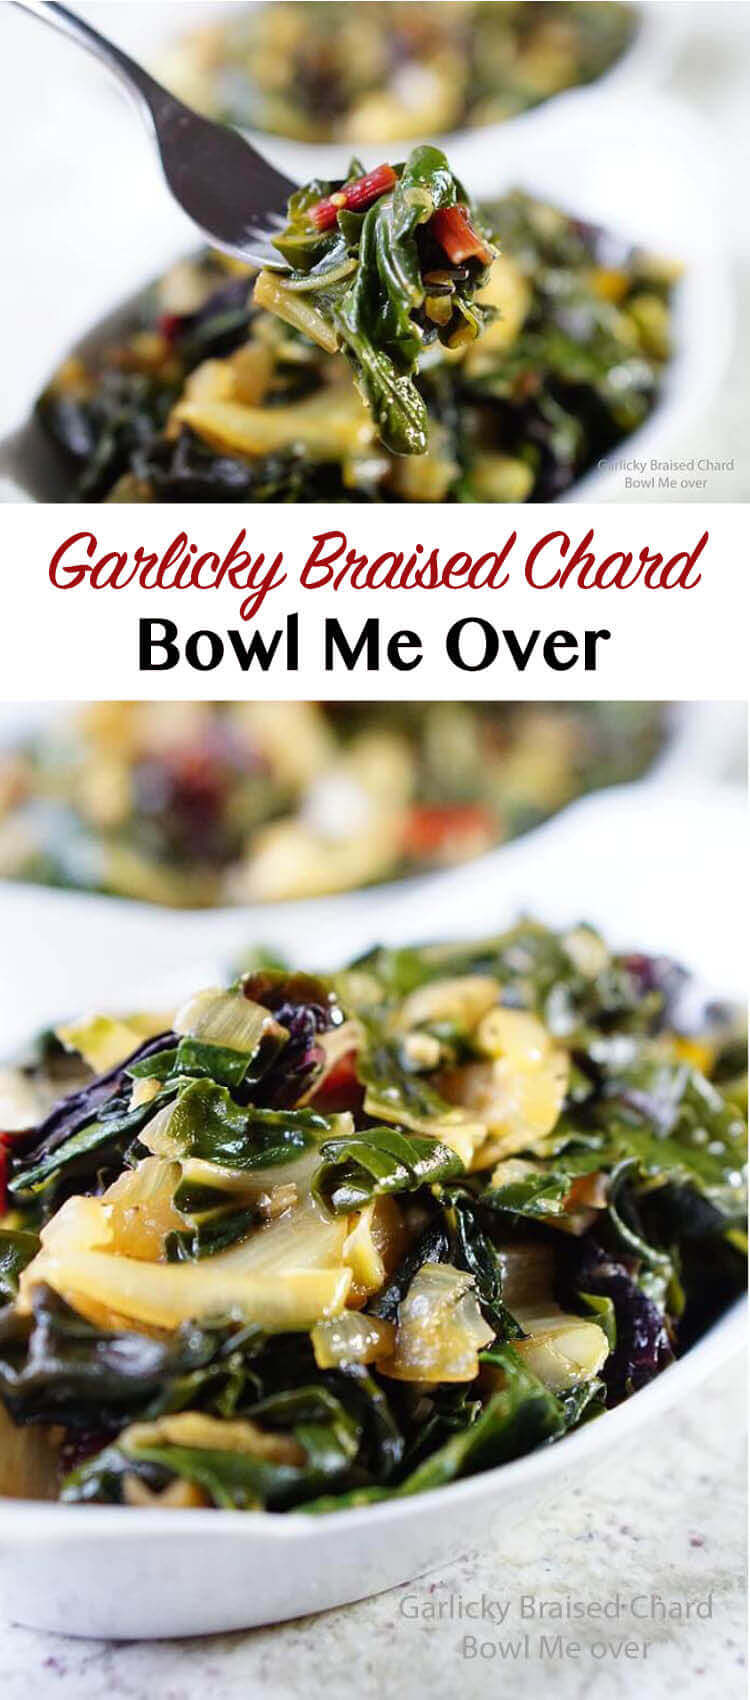 Garlicky Braised Chard - The combination of greens and garlic is tantalizing. Braising the greens and garlic together and it becomes garlicky sweet goodness!